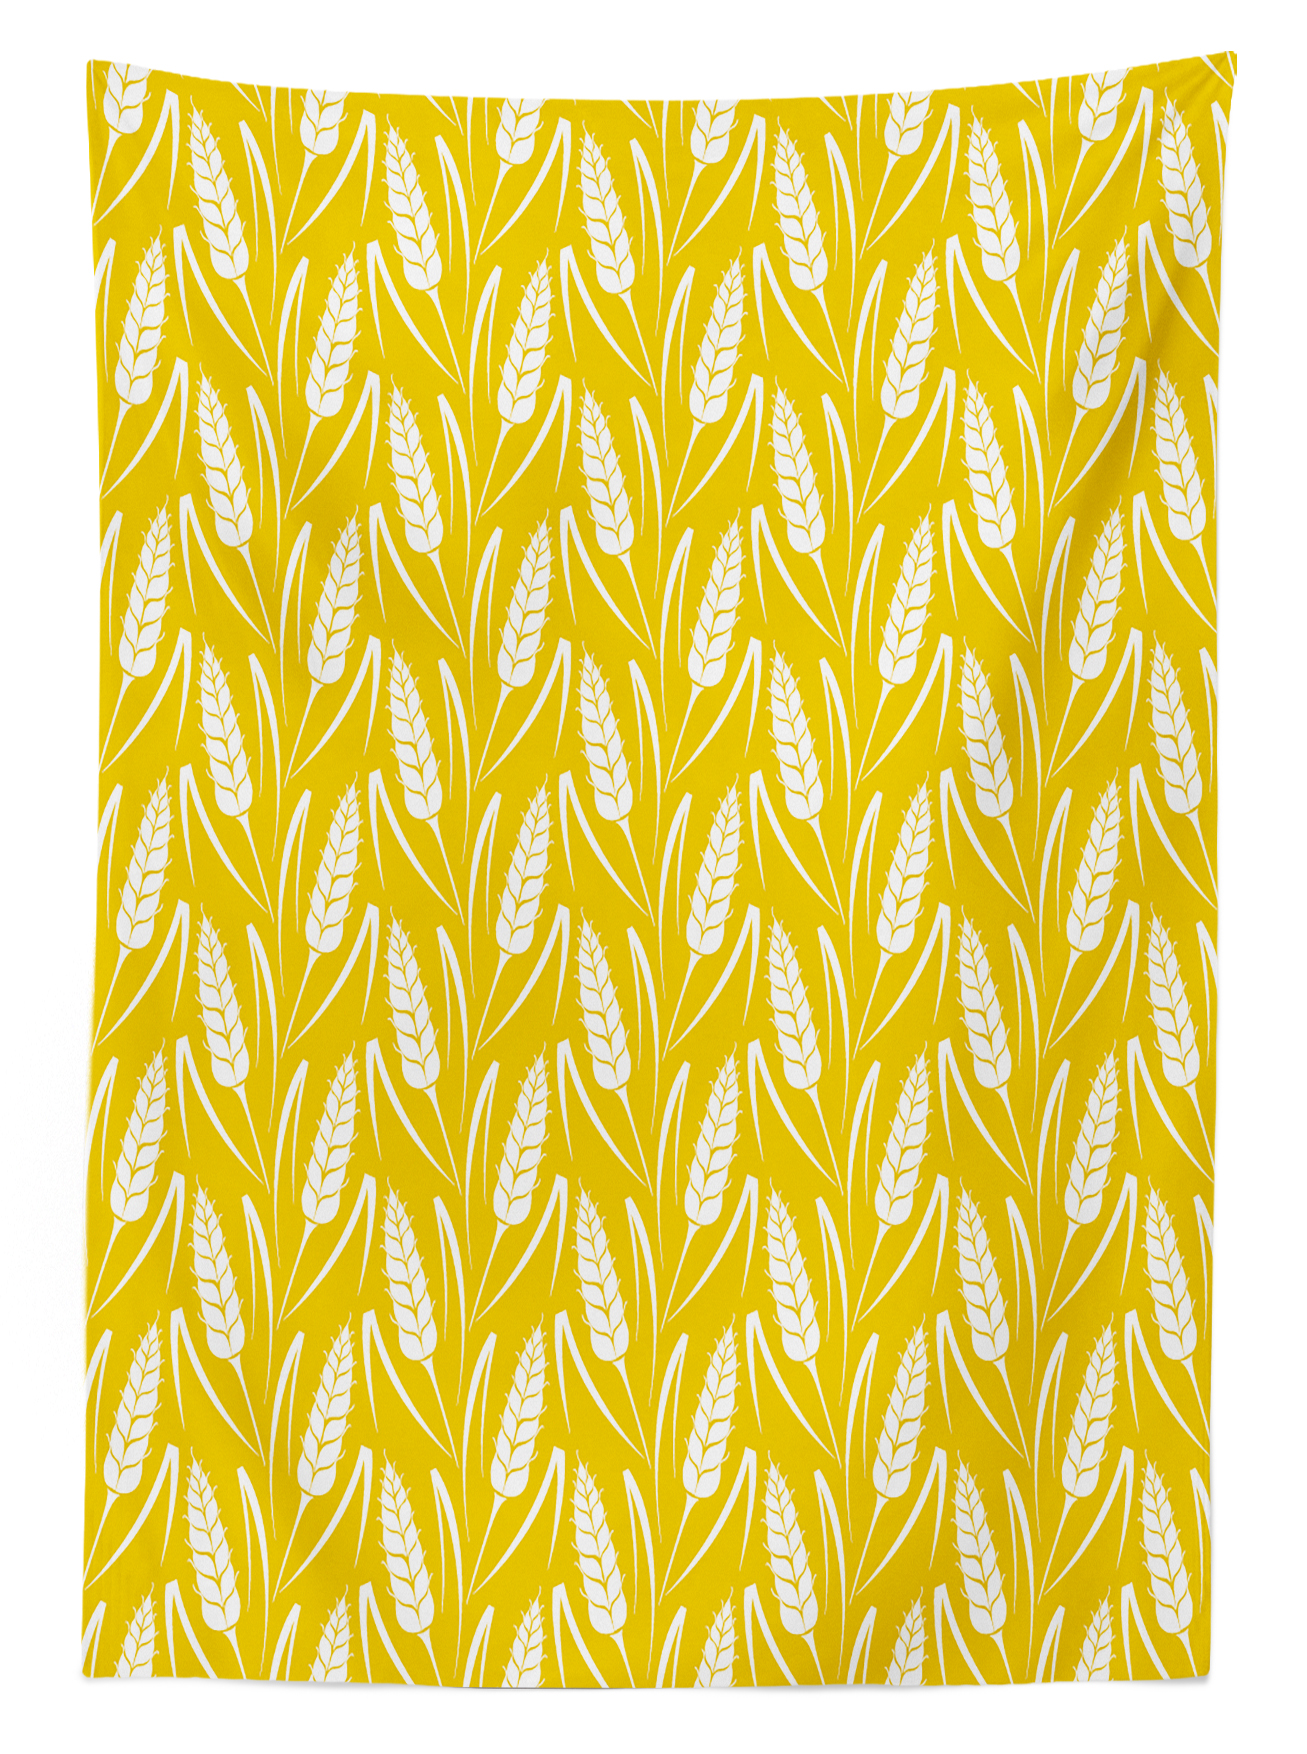 Yellow And White Tablecloth, Growing Rye Field Silhouettes Of Wheat Ears  Whole Grain Natural,